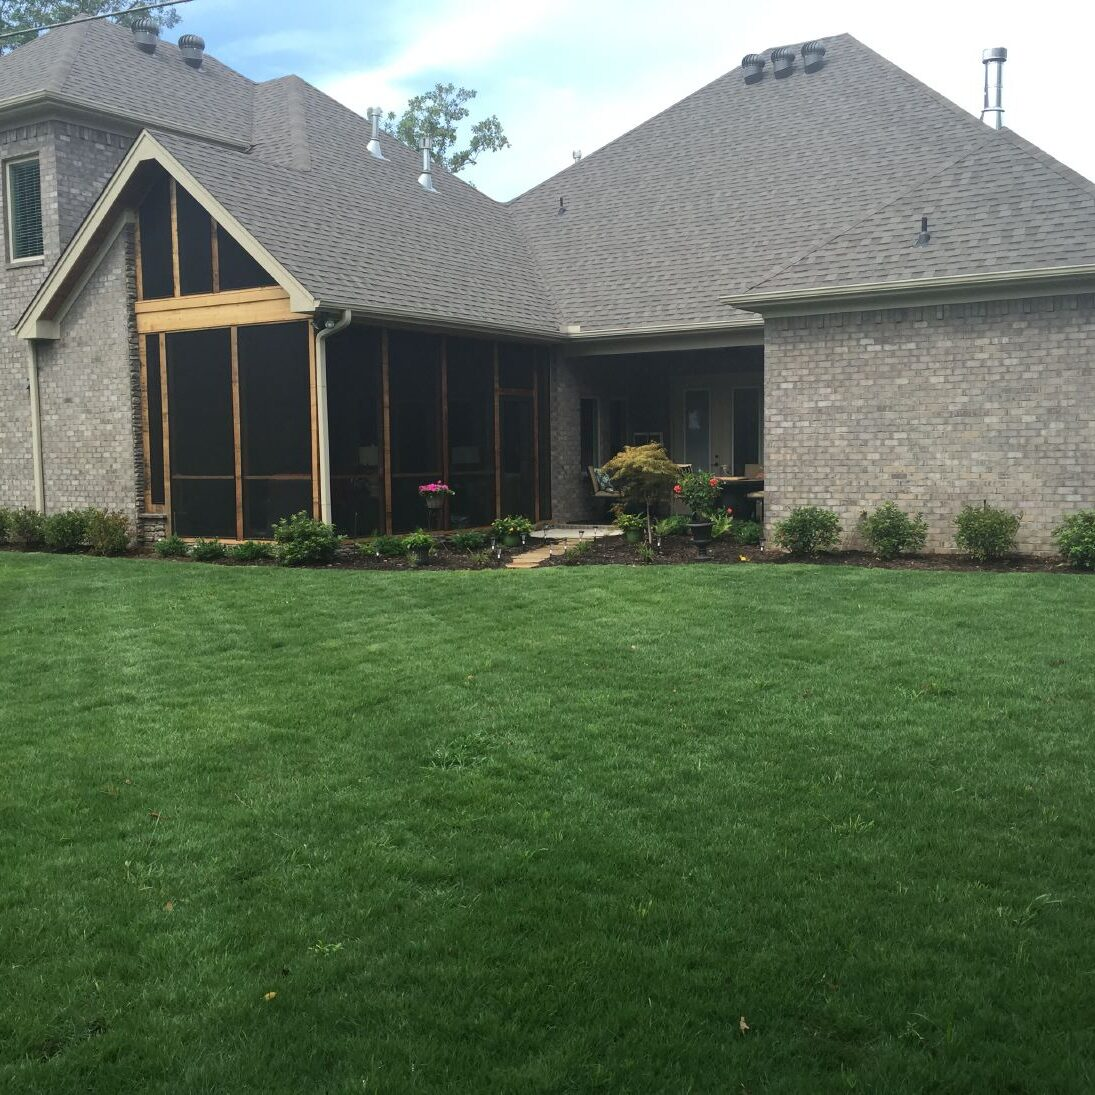 We'd love to discuss your lawn and landscape needs across Central Arkansas